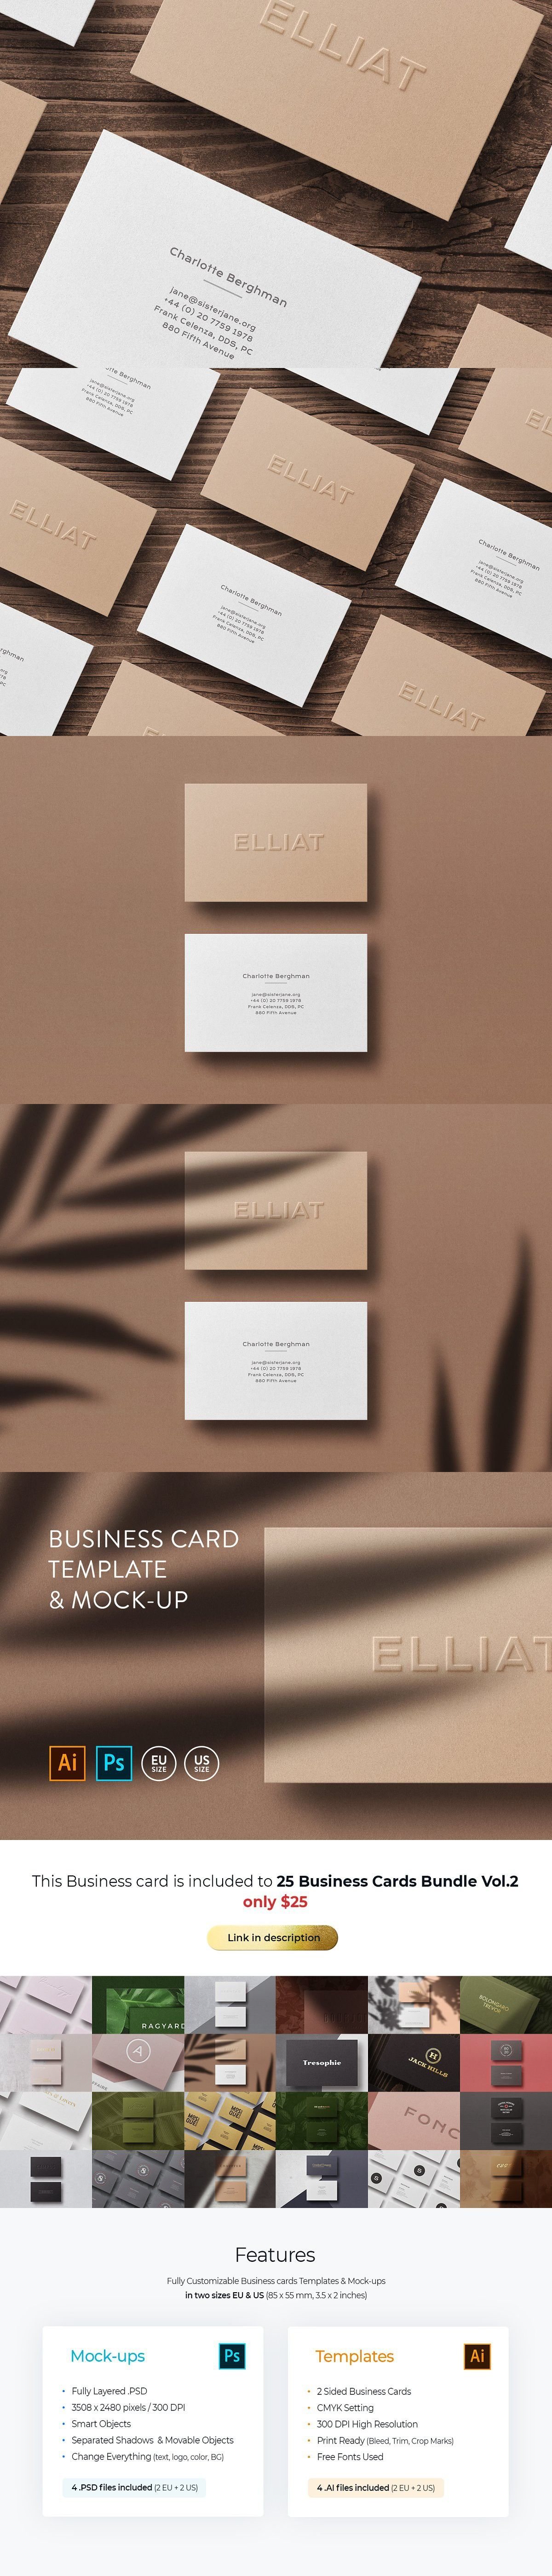 Business Card Template Mock Up Business Card Template Minimal Business Card Templates